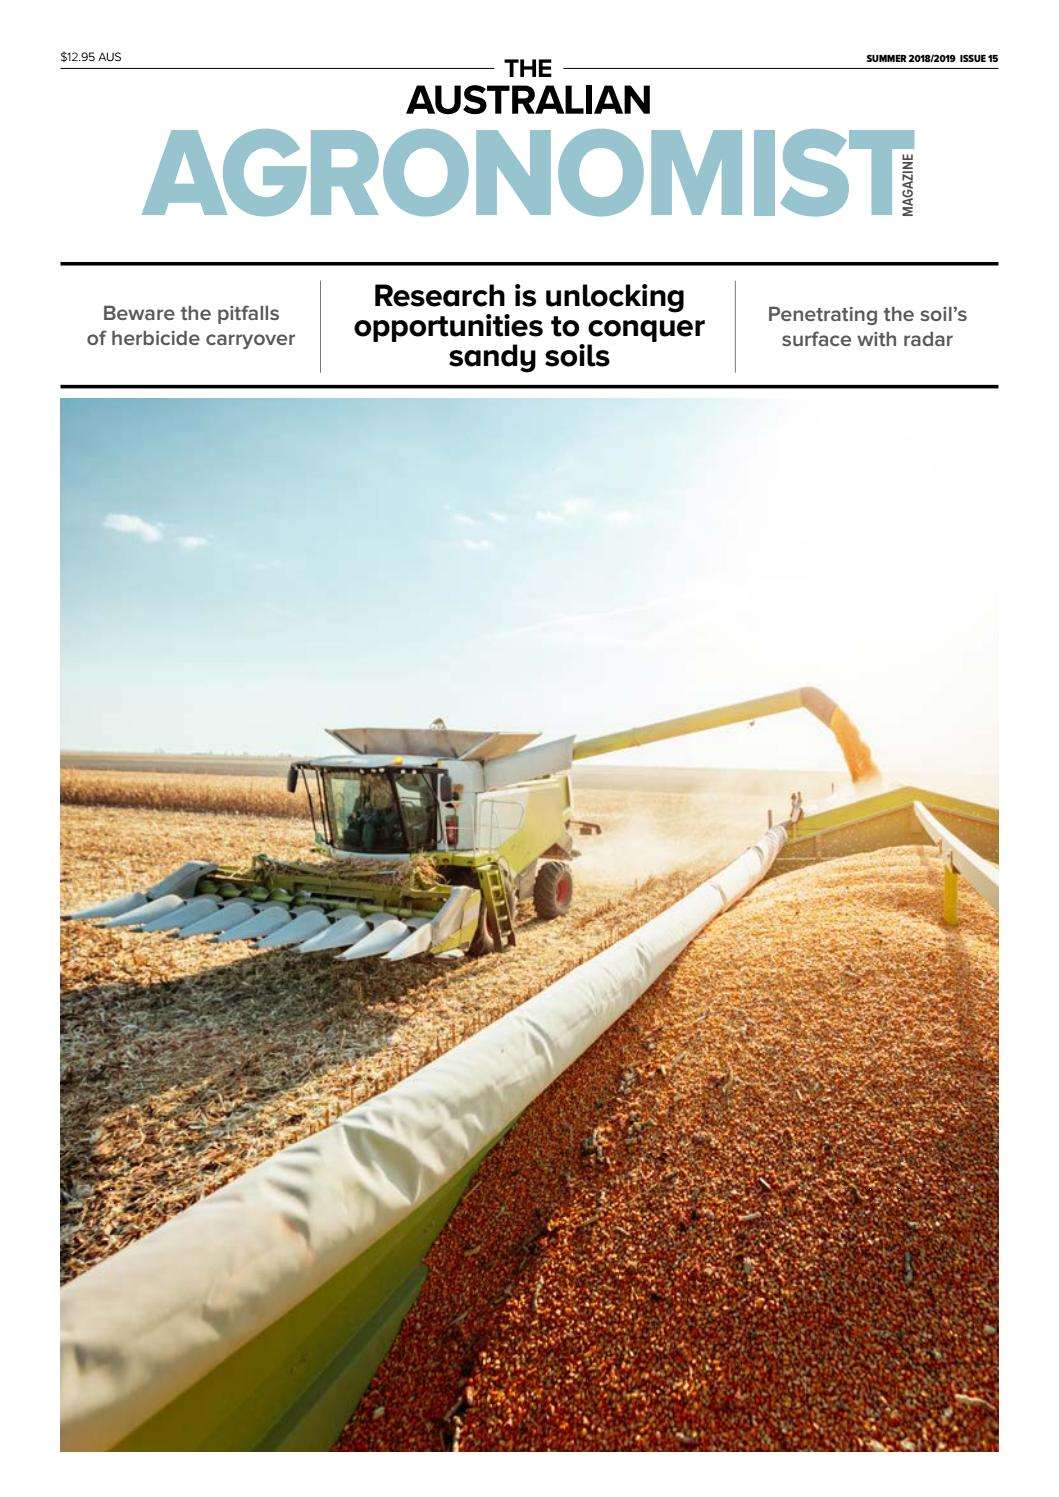 The Australian Agronomist Summer 2019 by The Australian